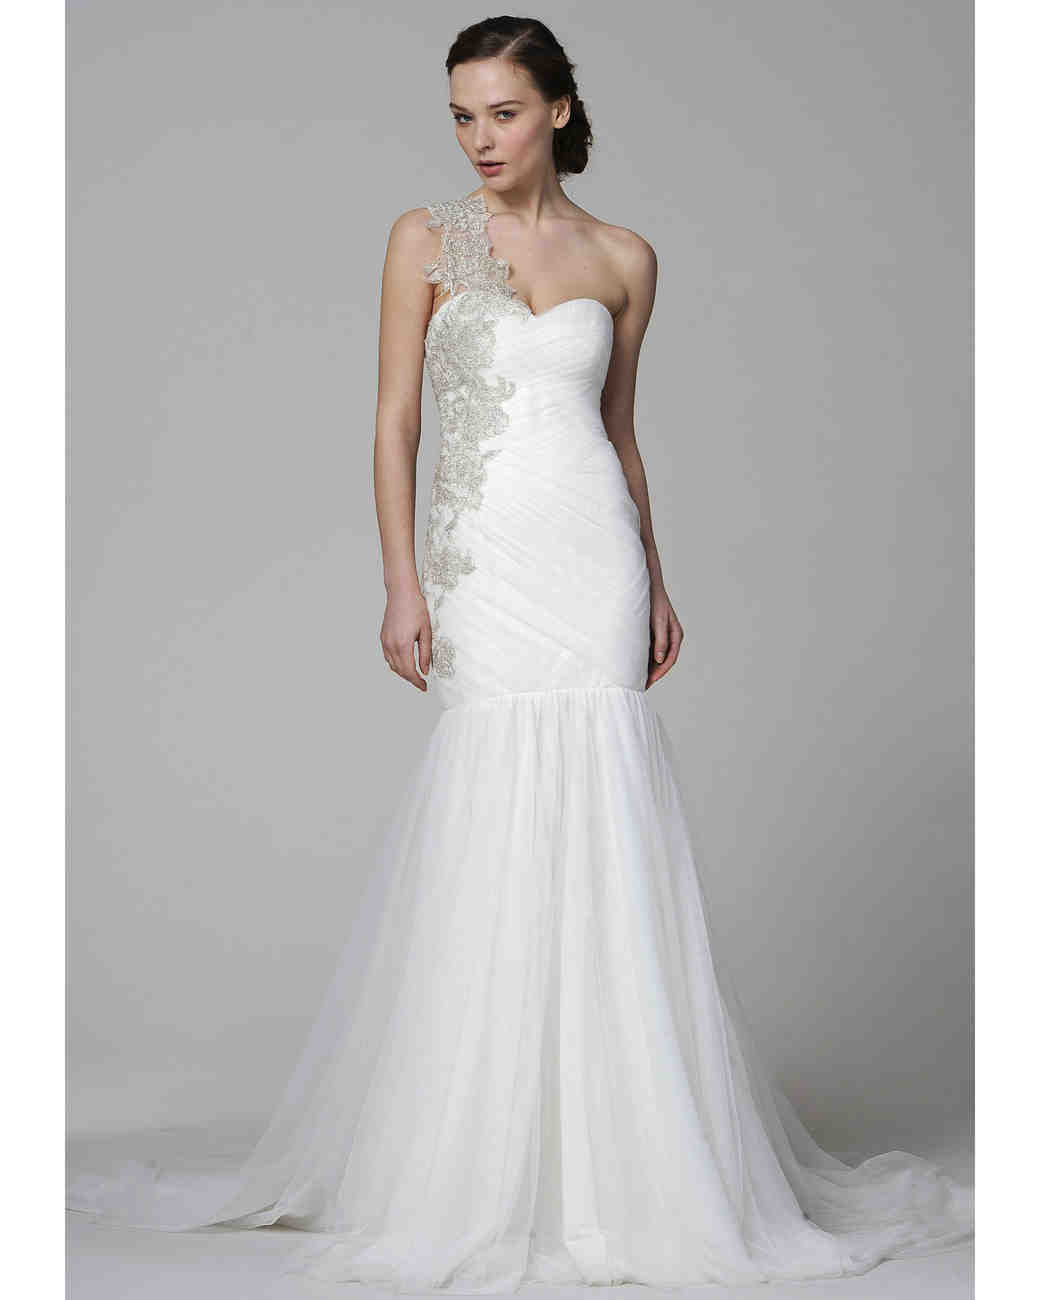 Wedding Dresess: One Shoulder Wedding Dresses, Spring 2013 Bridal Fashion